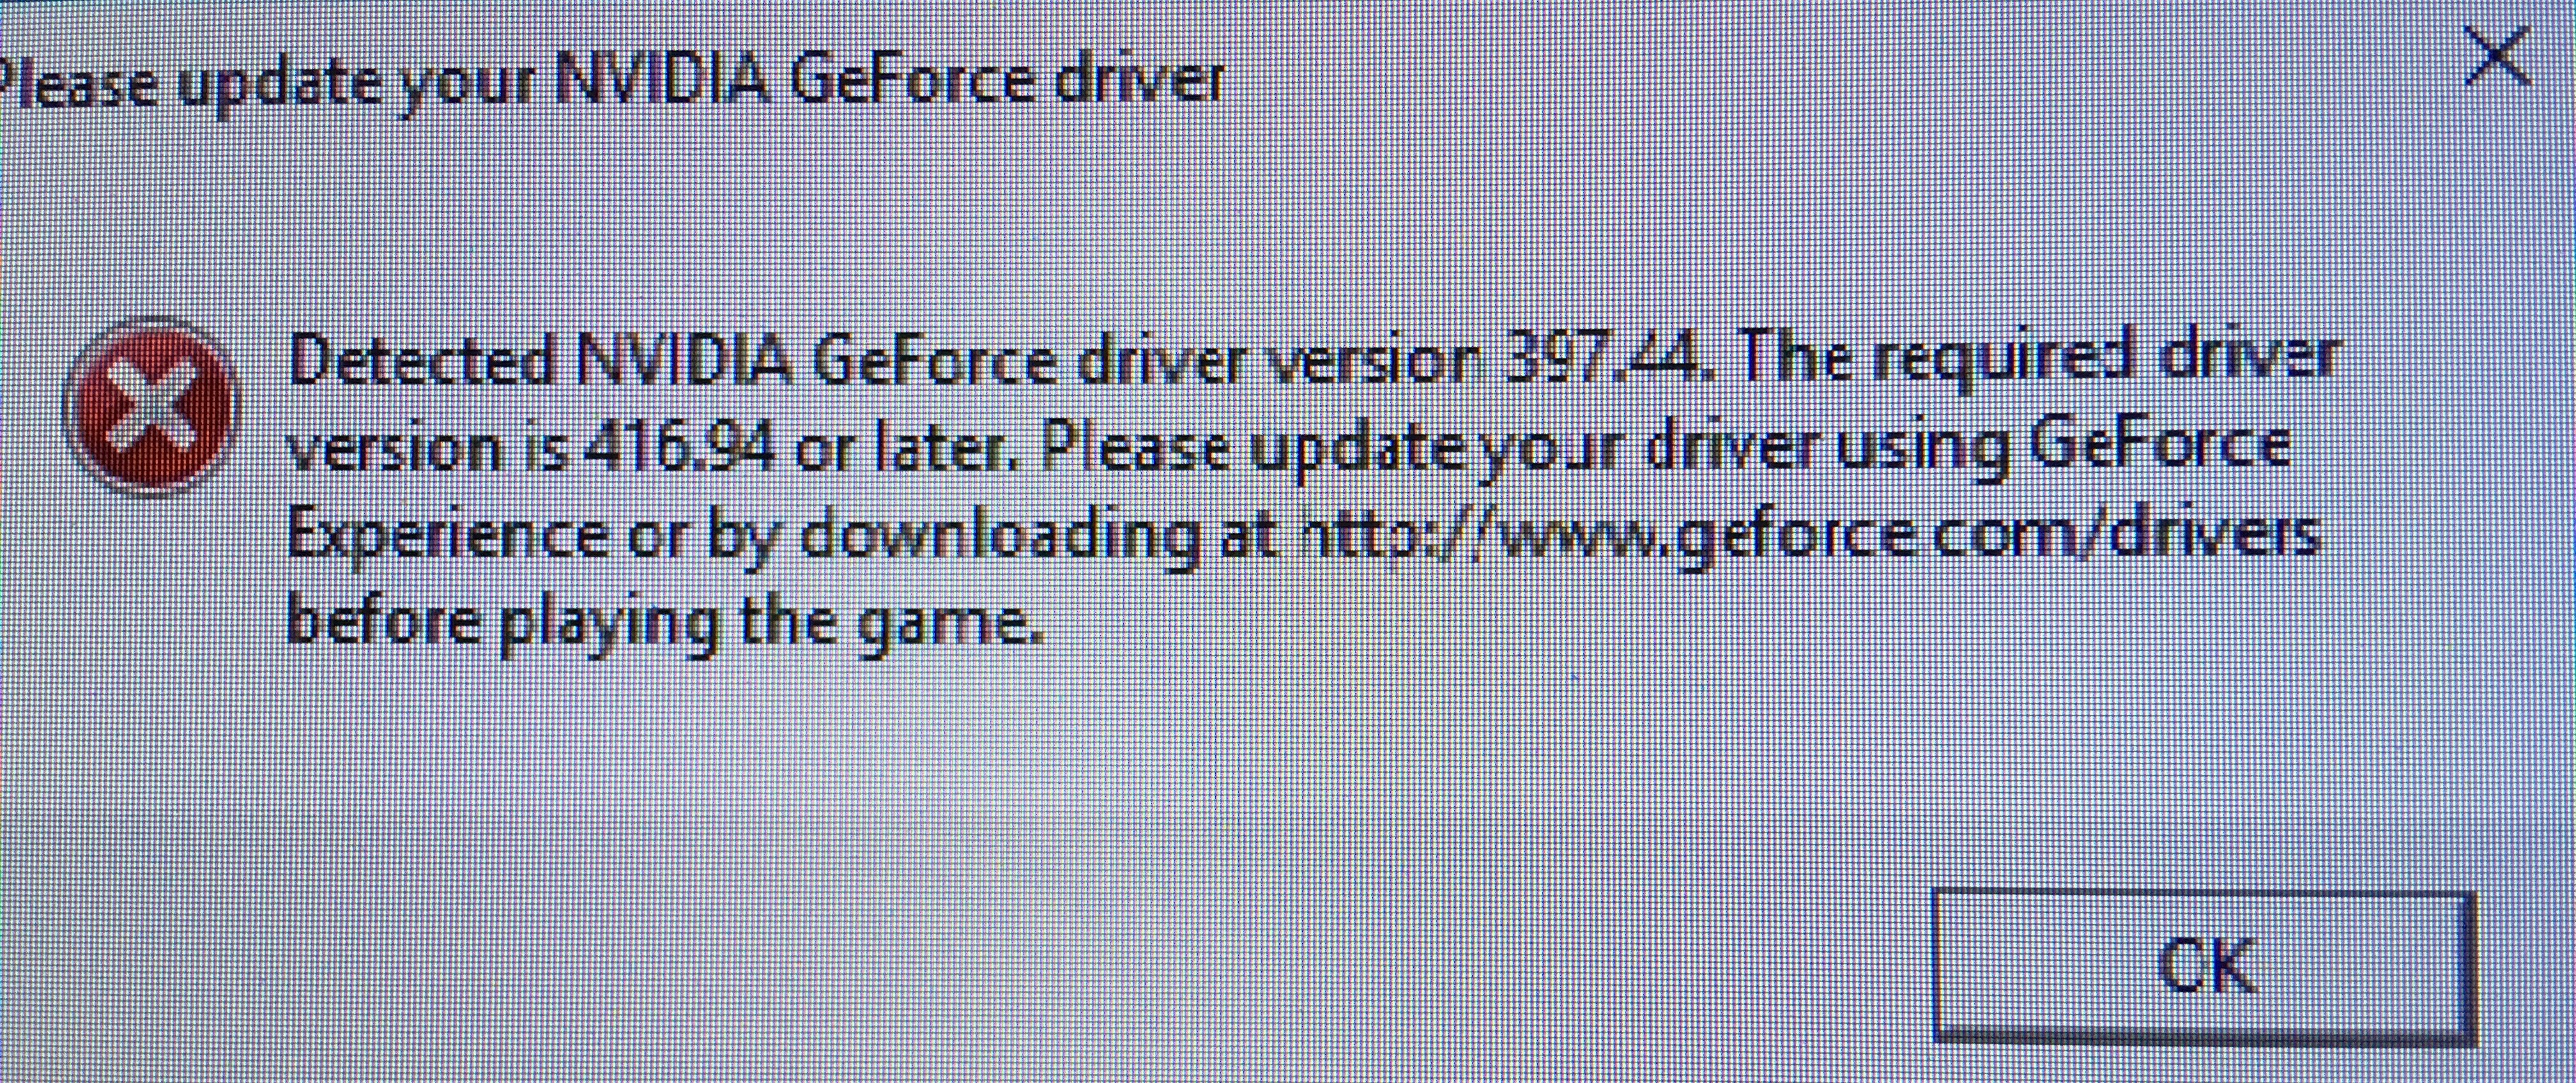 416 94 nvidia driver required - 397 44 detected